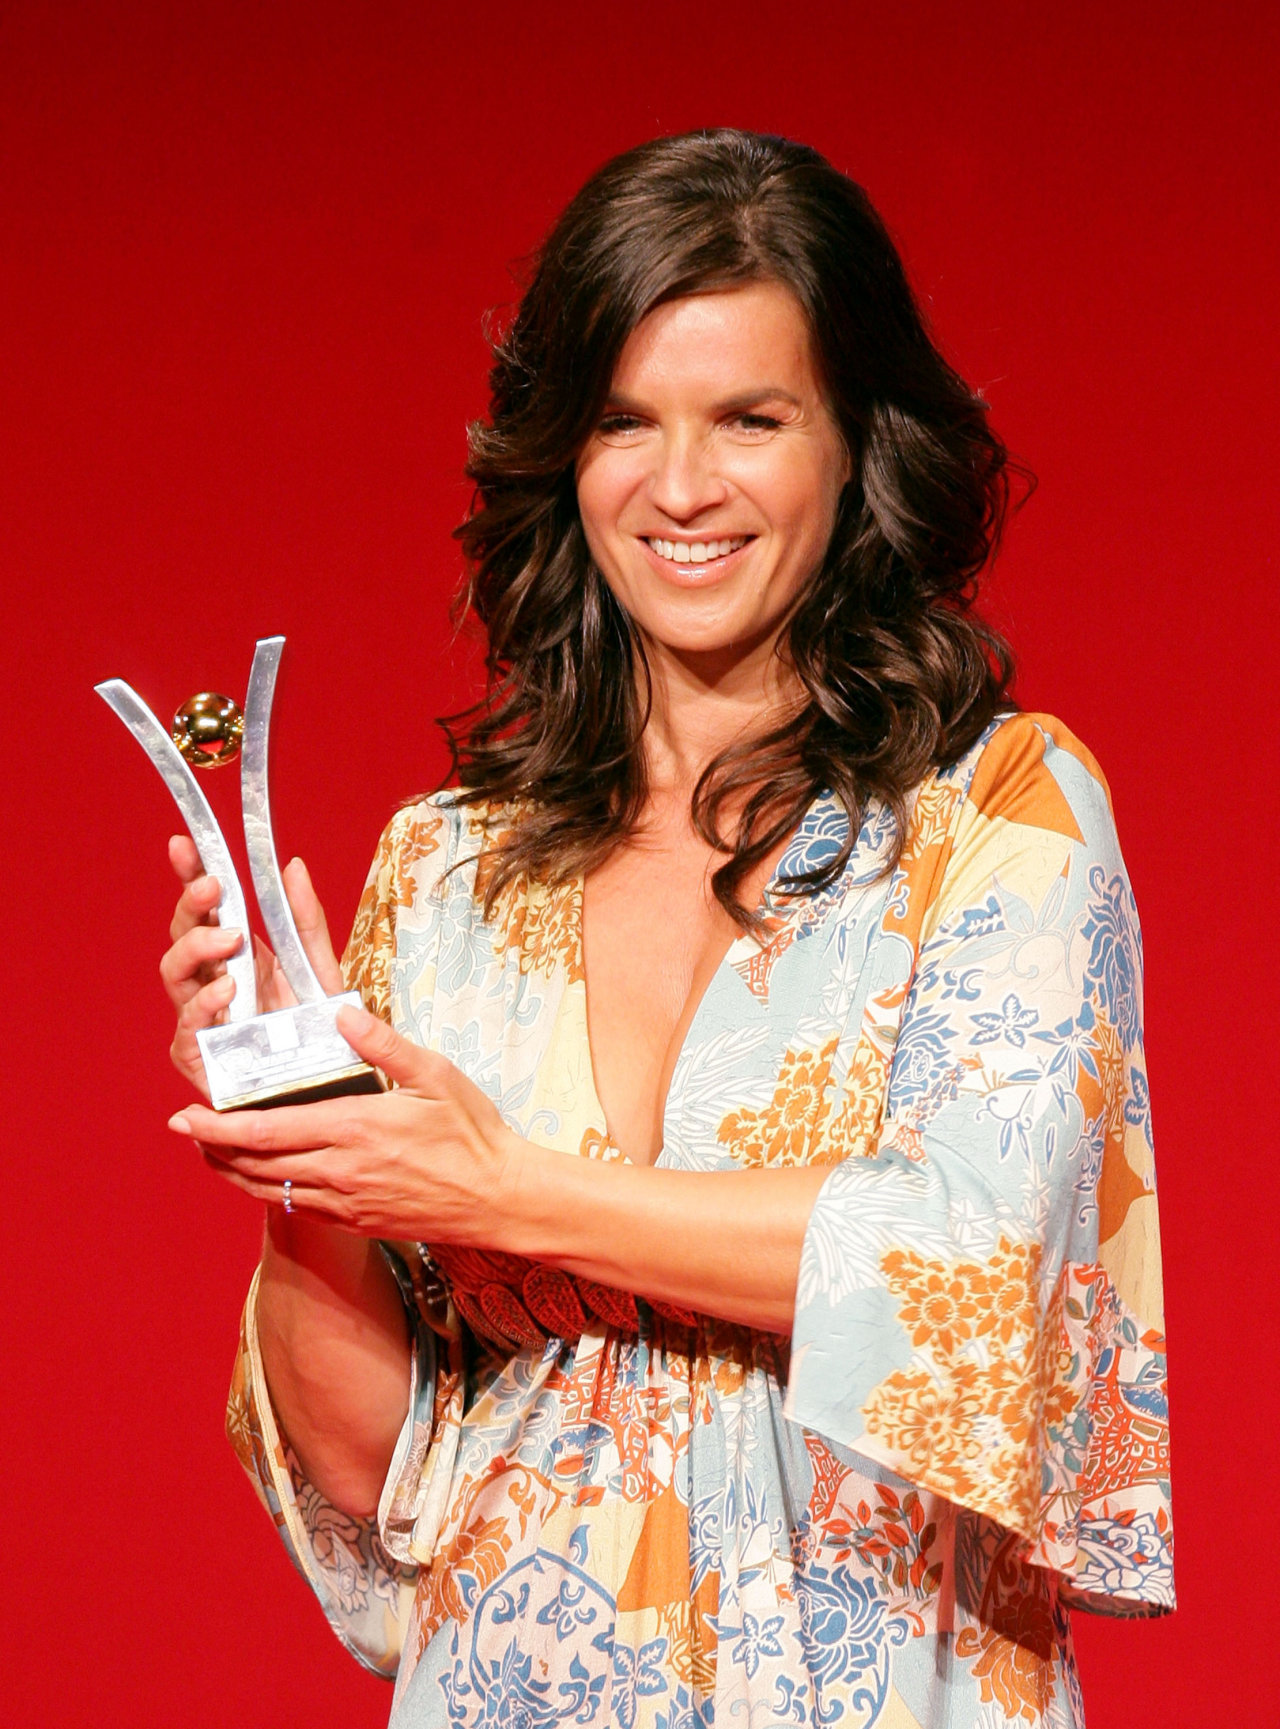 Katarina Witt wallpapers (79609). Beautiful Katarina Witt pictures and